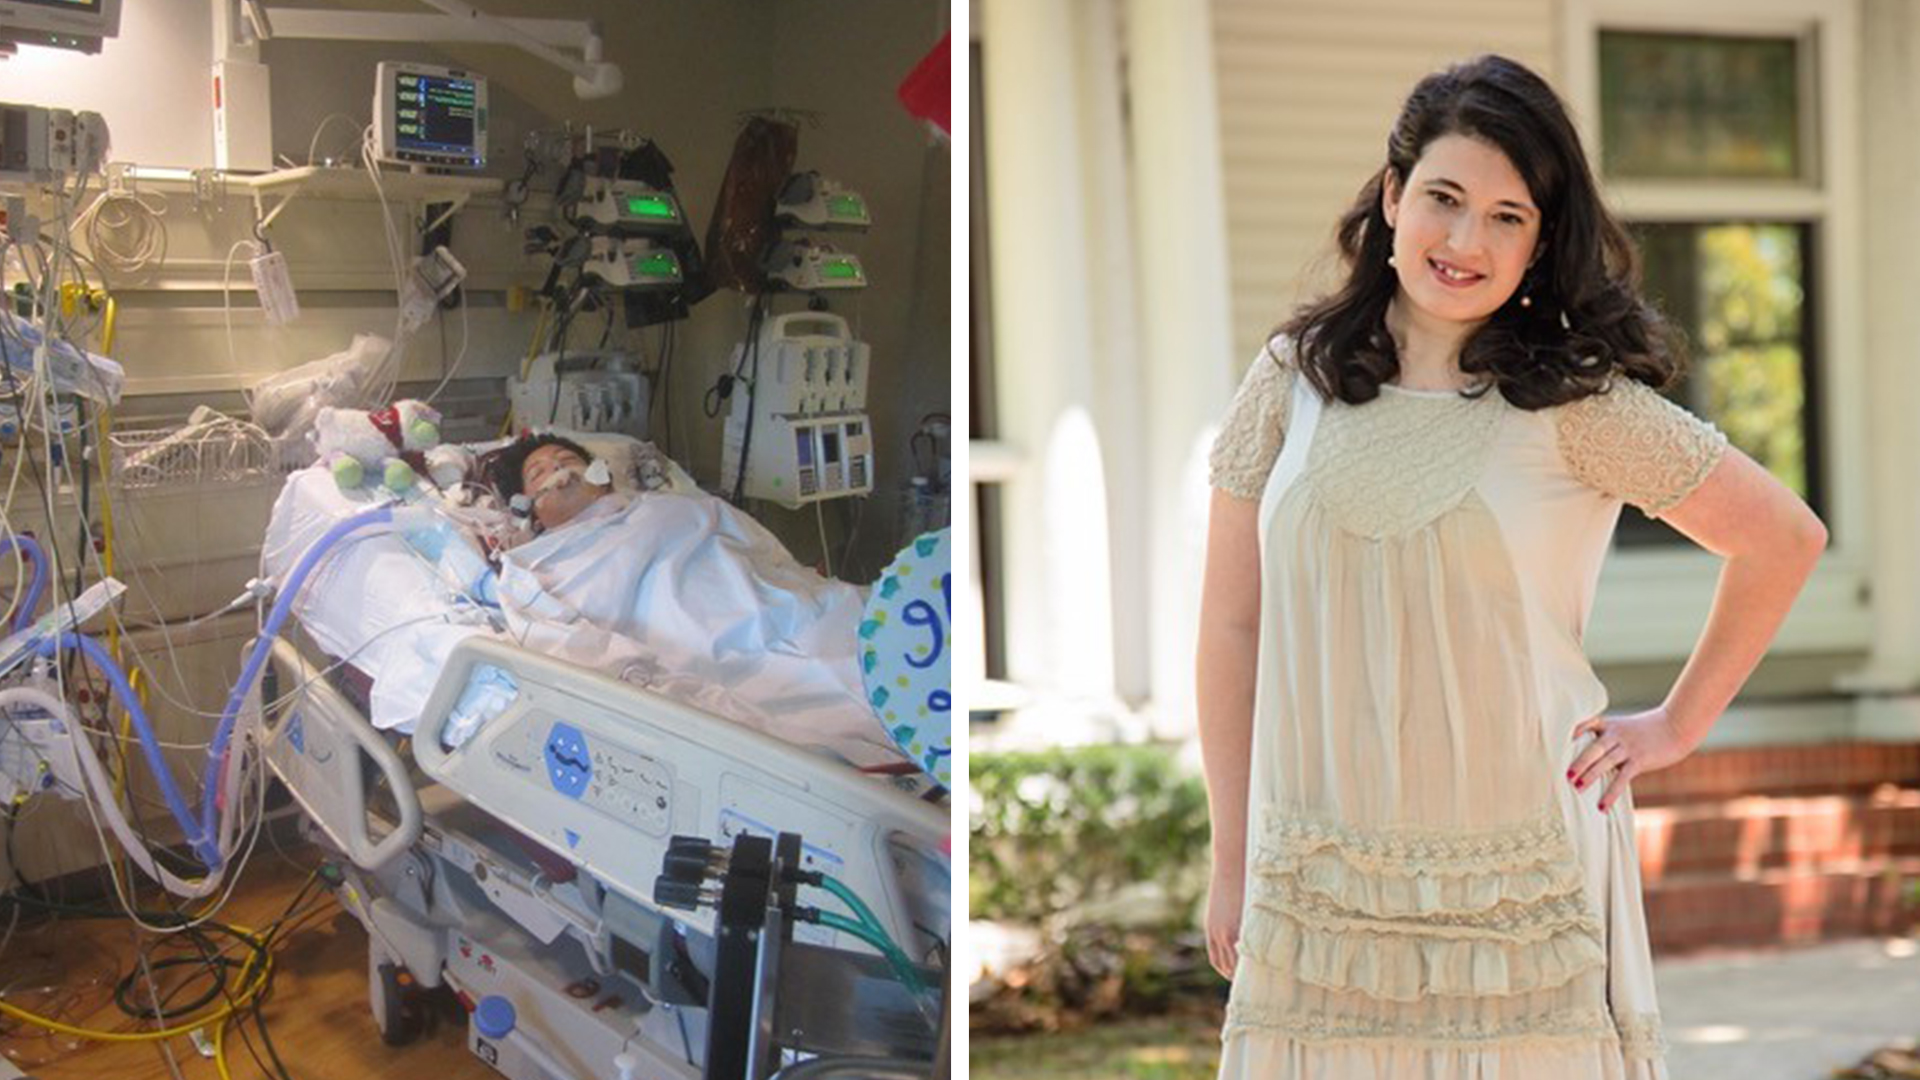 For patients like Kinsey Morgan, an amazing machine called ECMO can provide lifesaving care. See why this machine – and the team behind it at Levine Children's Hospital – are receiving global recognition.